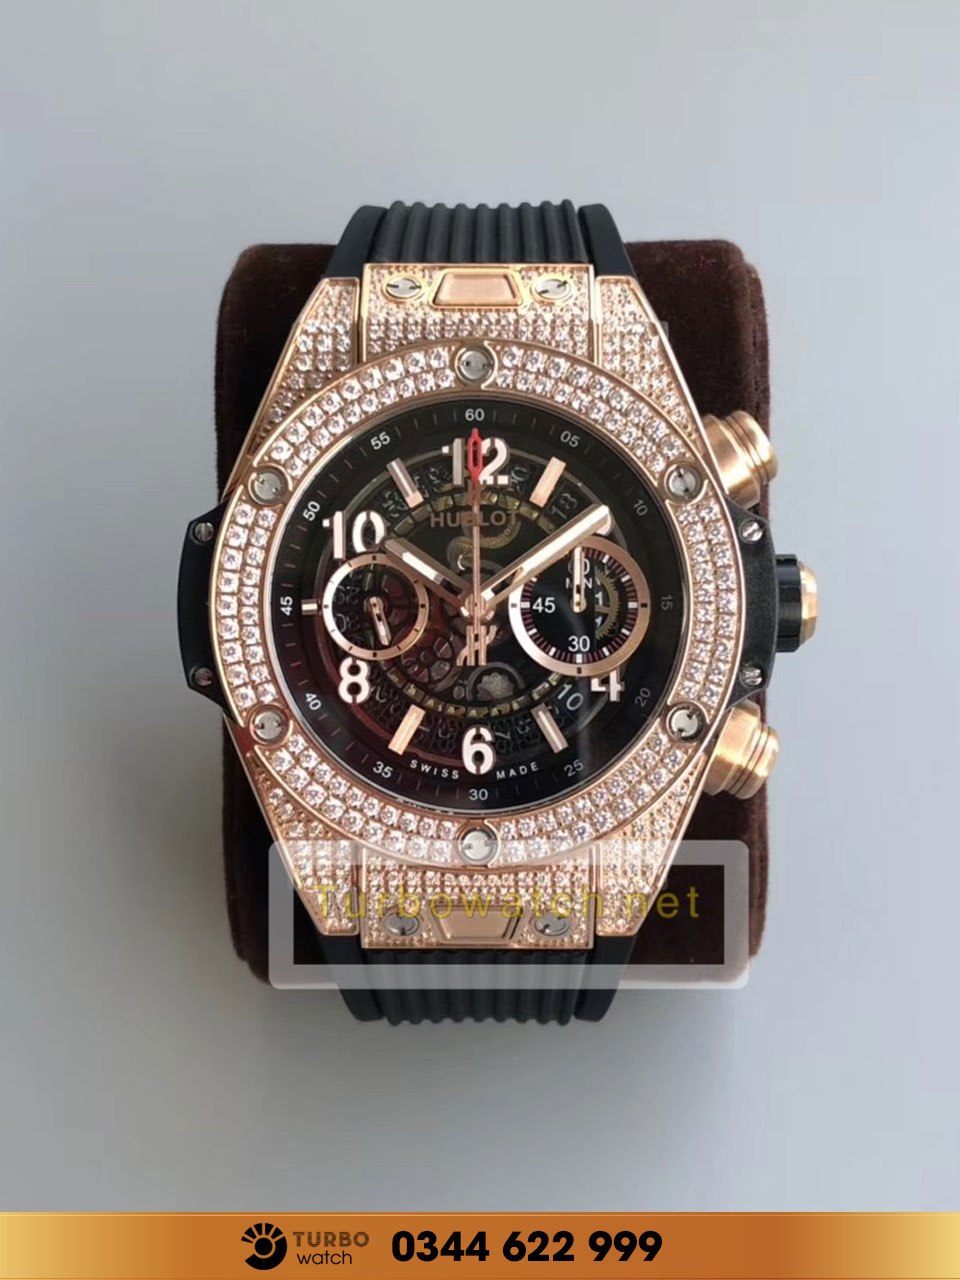 Hublot BIG BANG UNICO KING GOLD PAVE replica 1:1 cao cấp